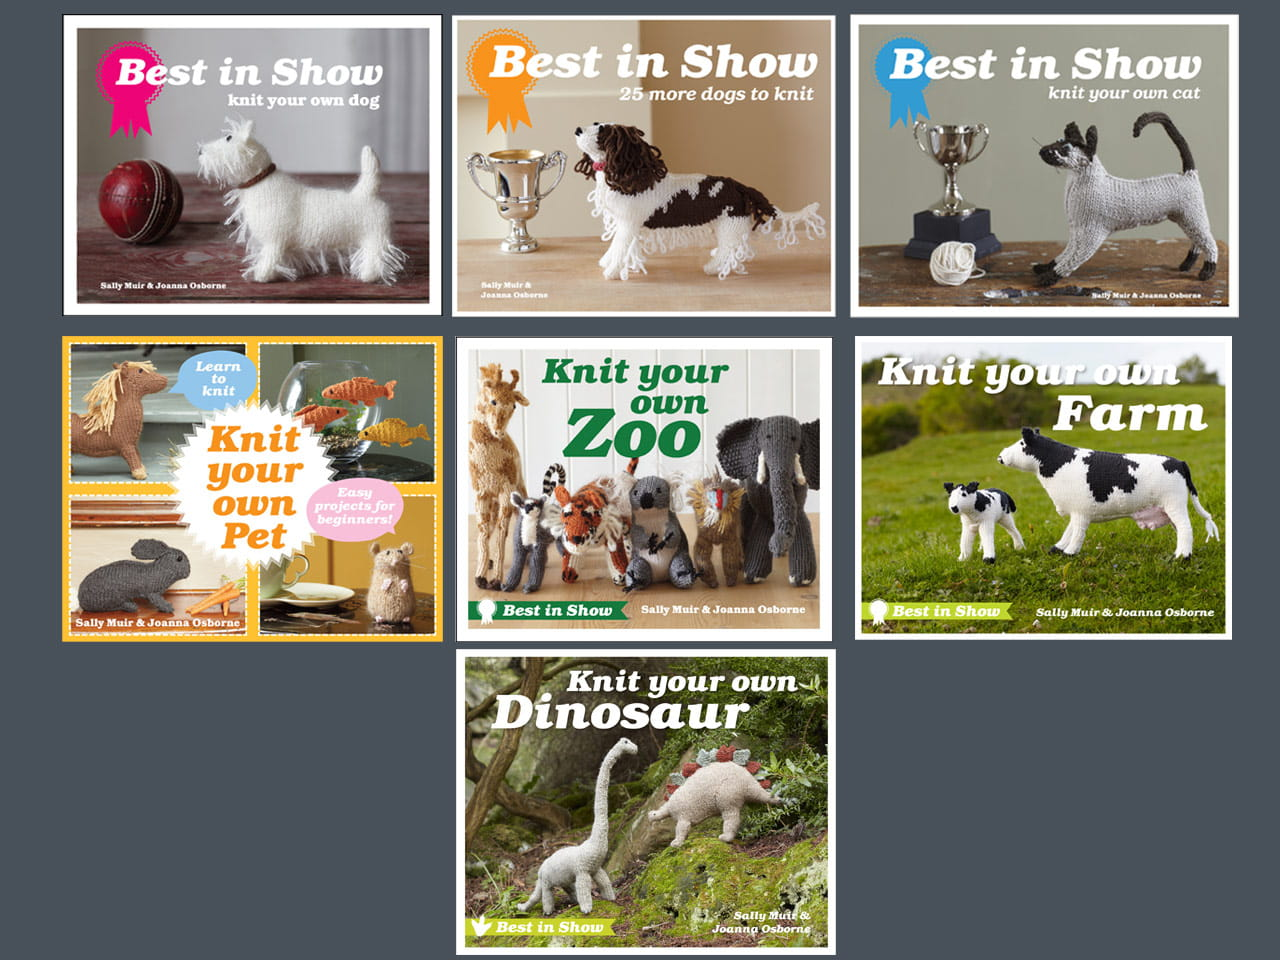 Best in Show covers